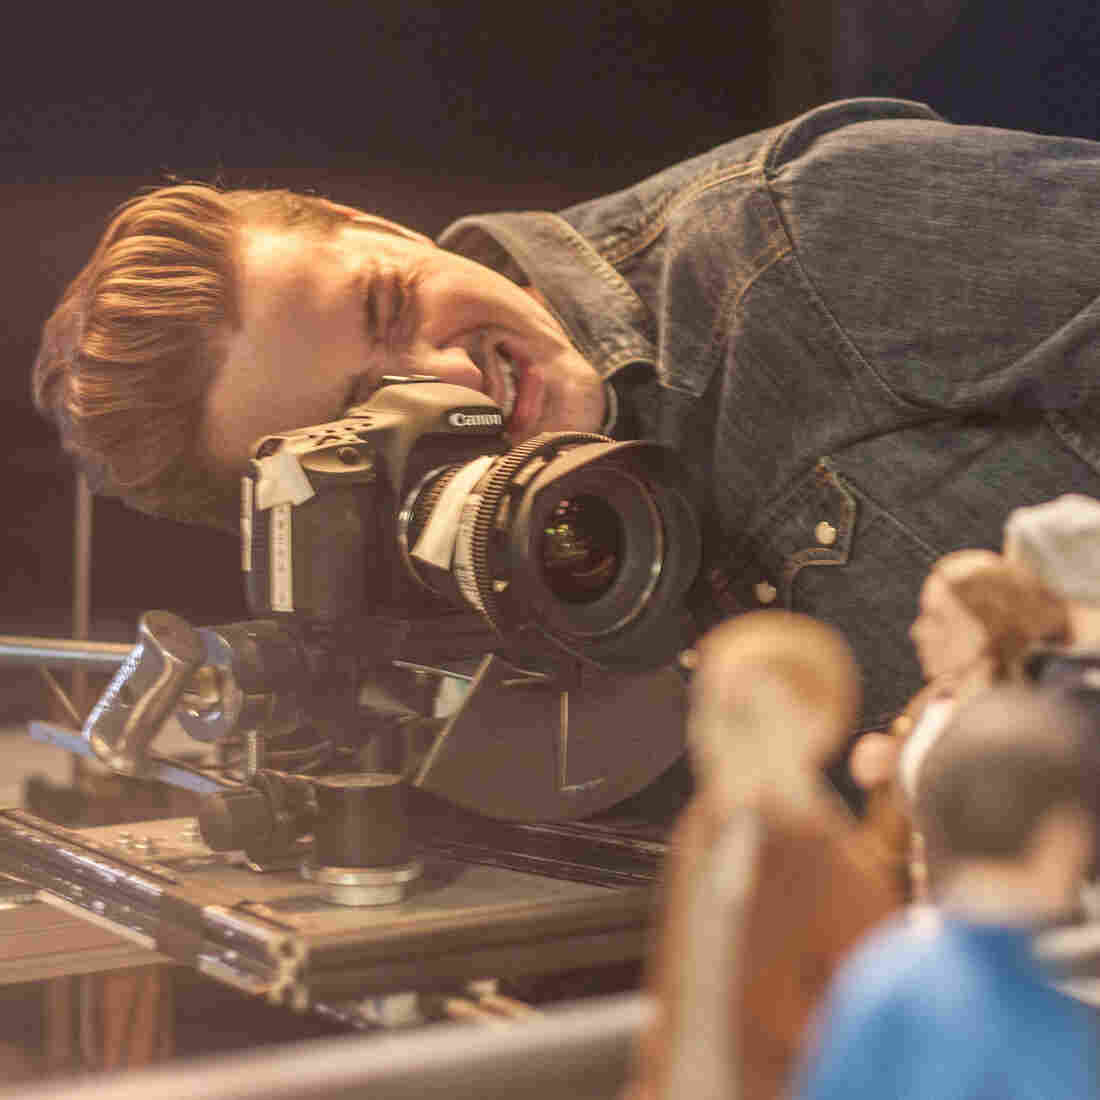 Frame-By-Frame, Filmmakers Make The Mundane Miraculous In 'Anomalisa'